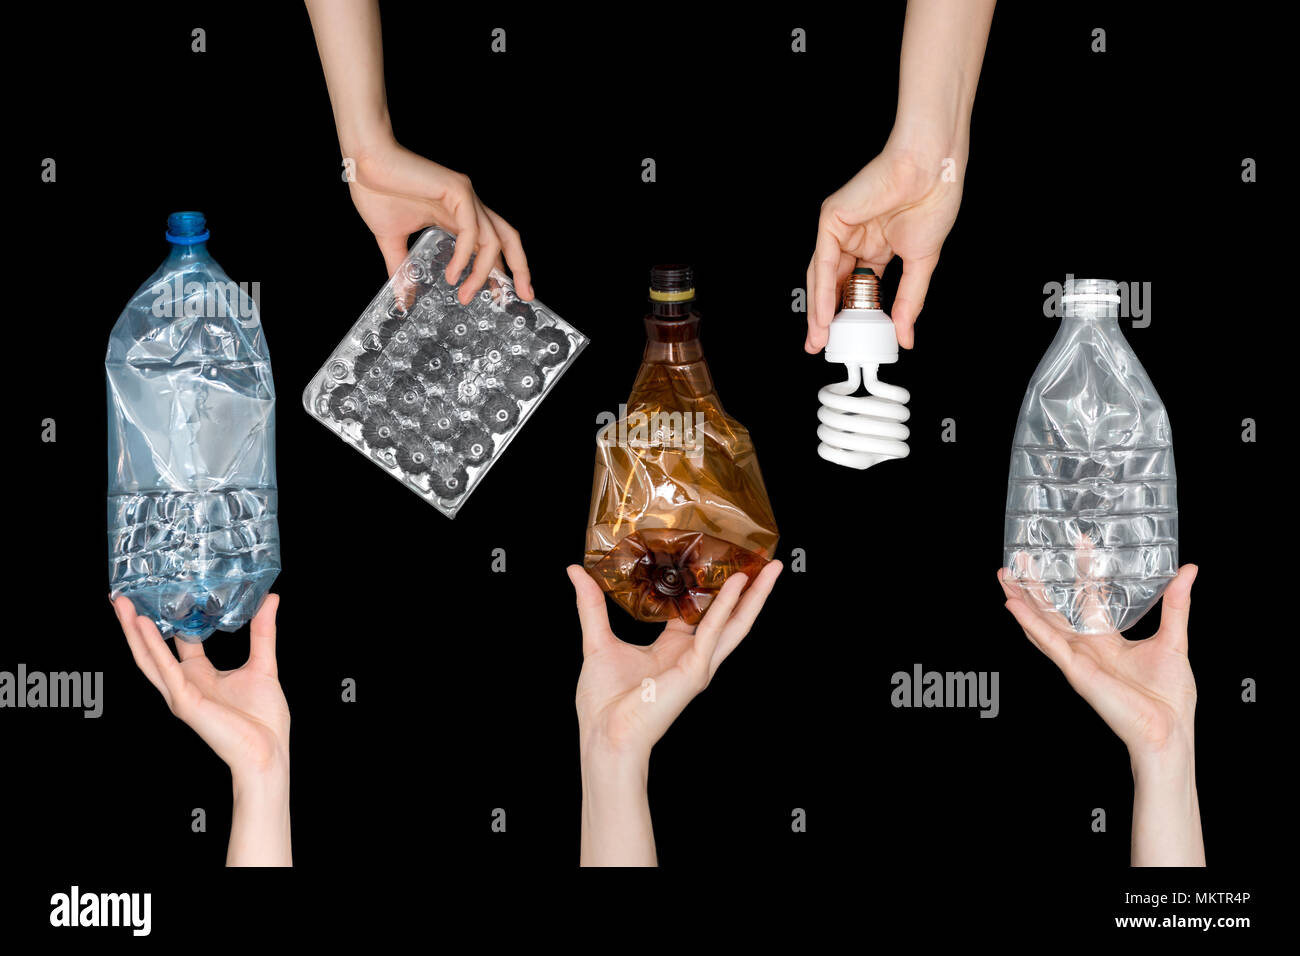 Female hands holding empty crushed plastic waste, lamp isolated on black background. Recyclable waste. Recycling, reuse, garbage disposal, resources,  - Stock Image